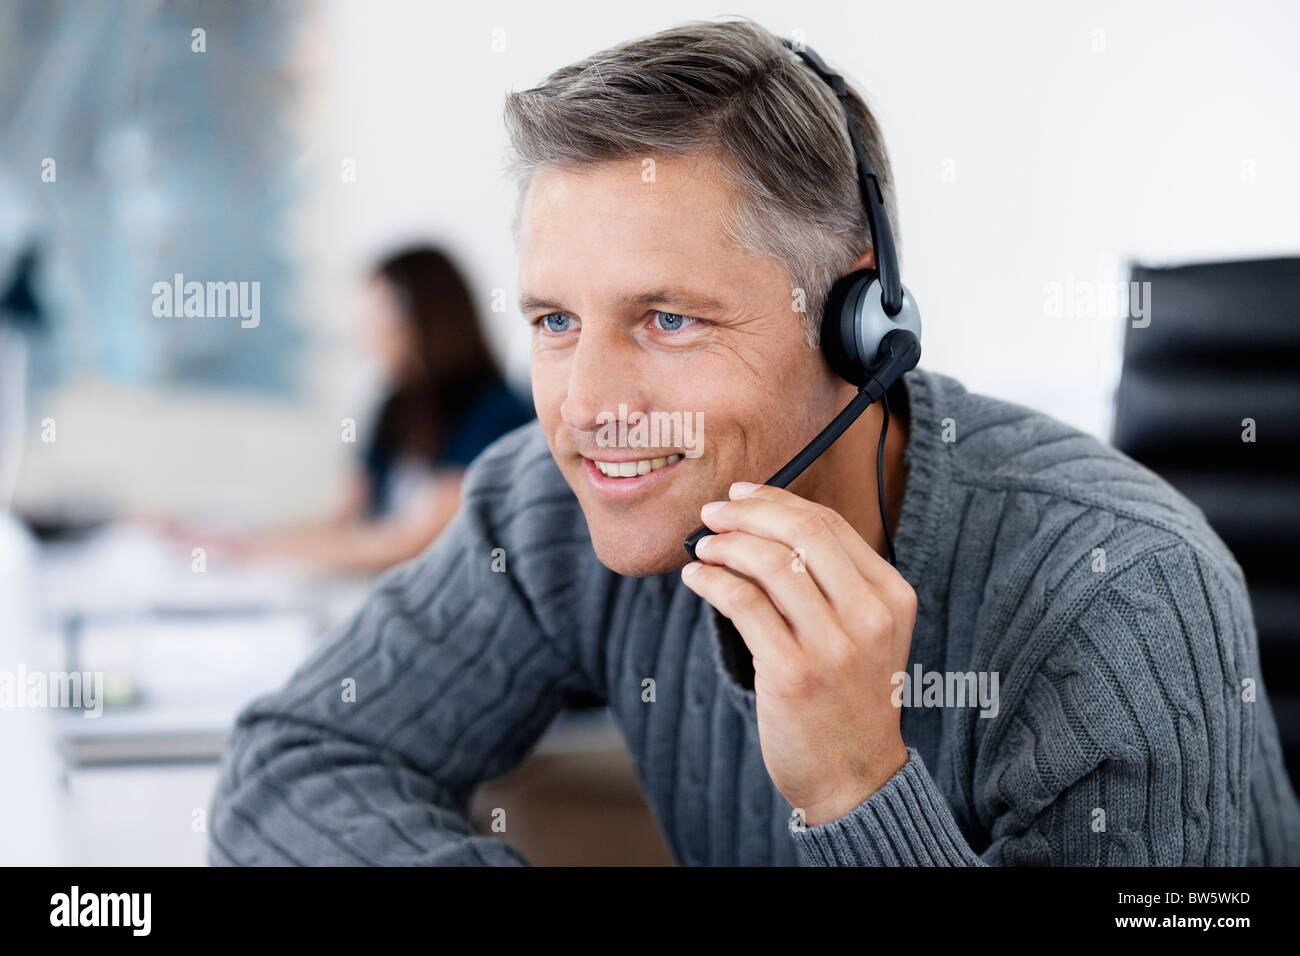 Businessman phoning with headset - Stock Image